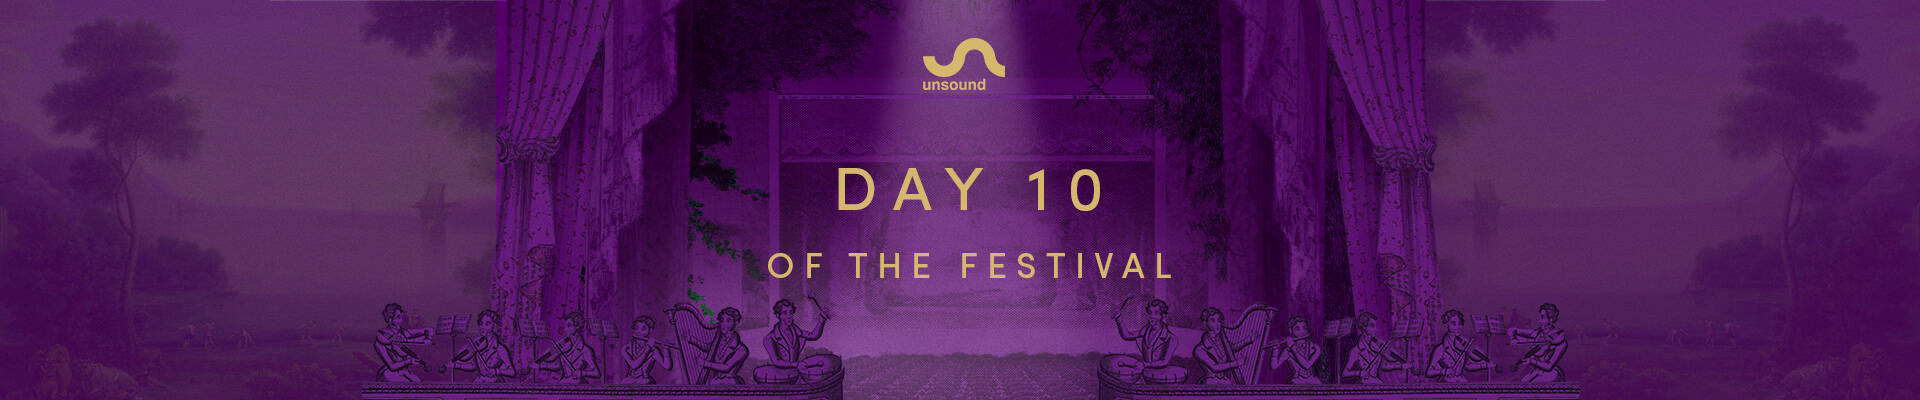 unsound day 10 pic